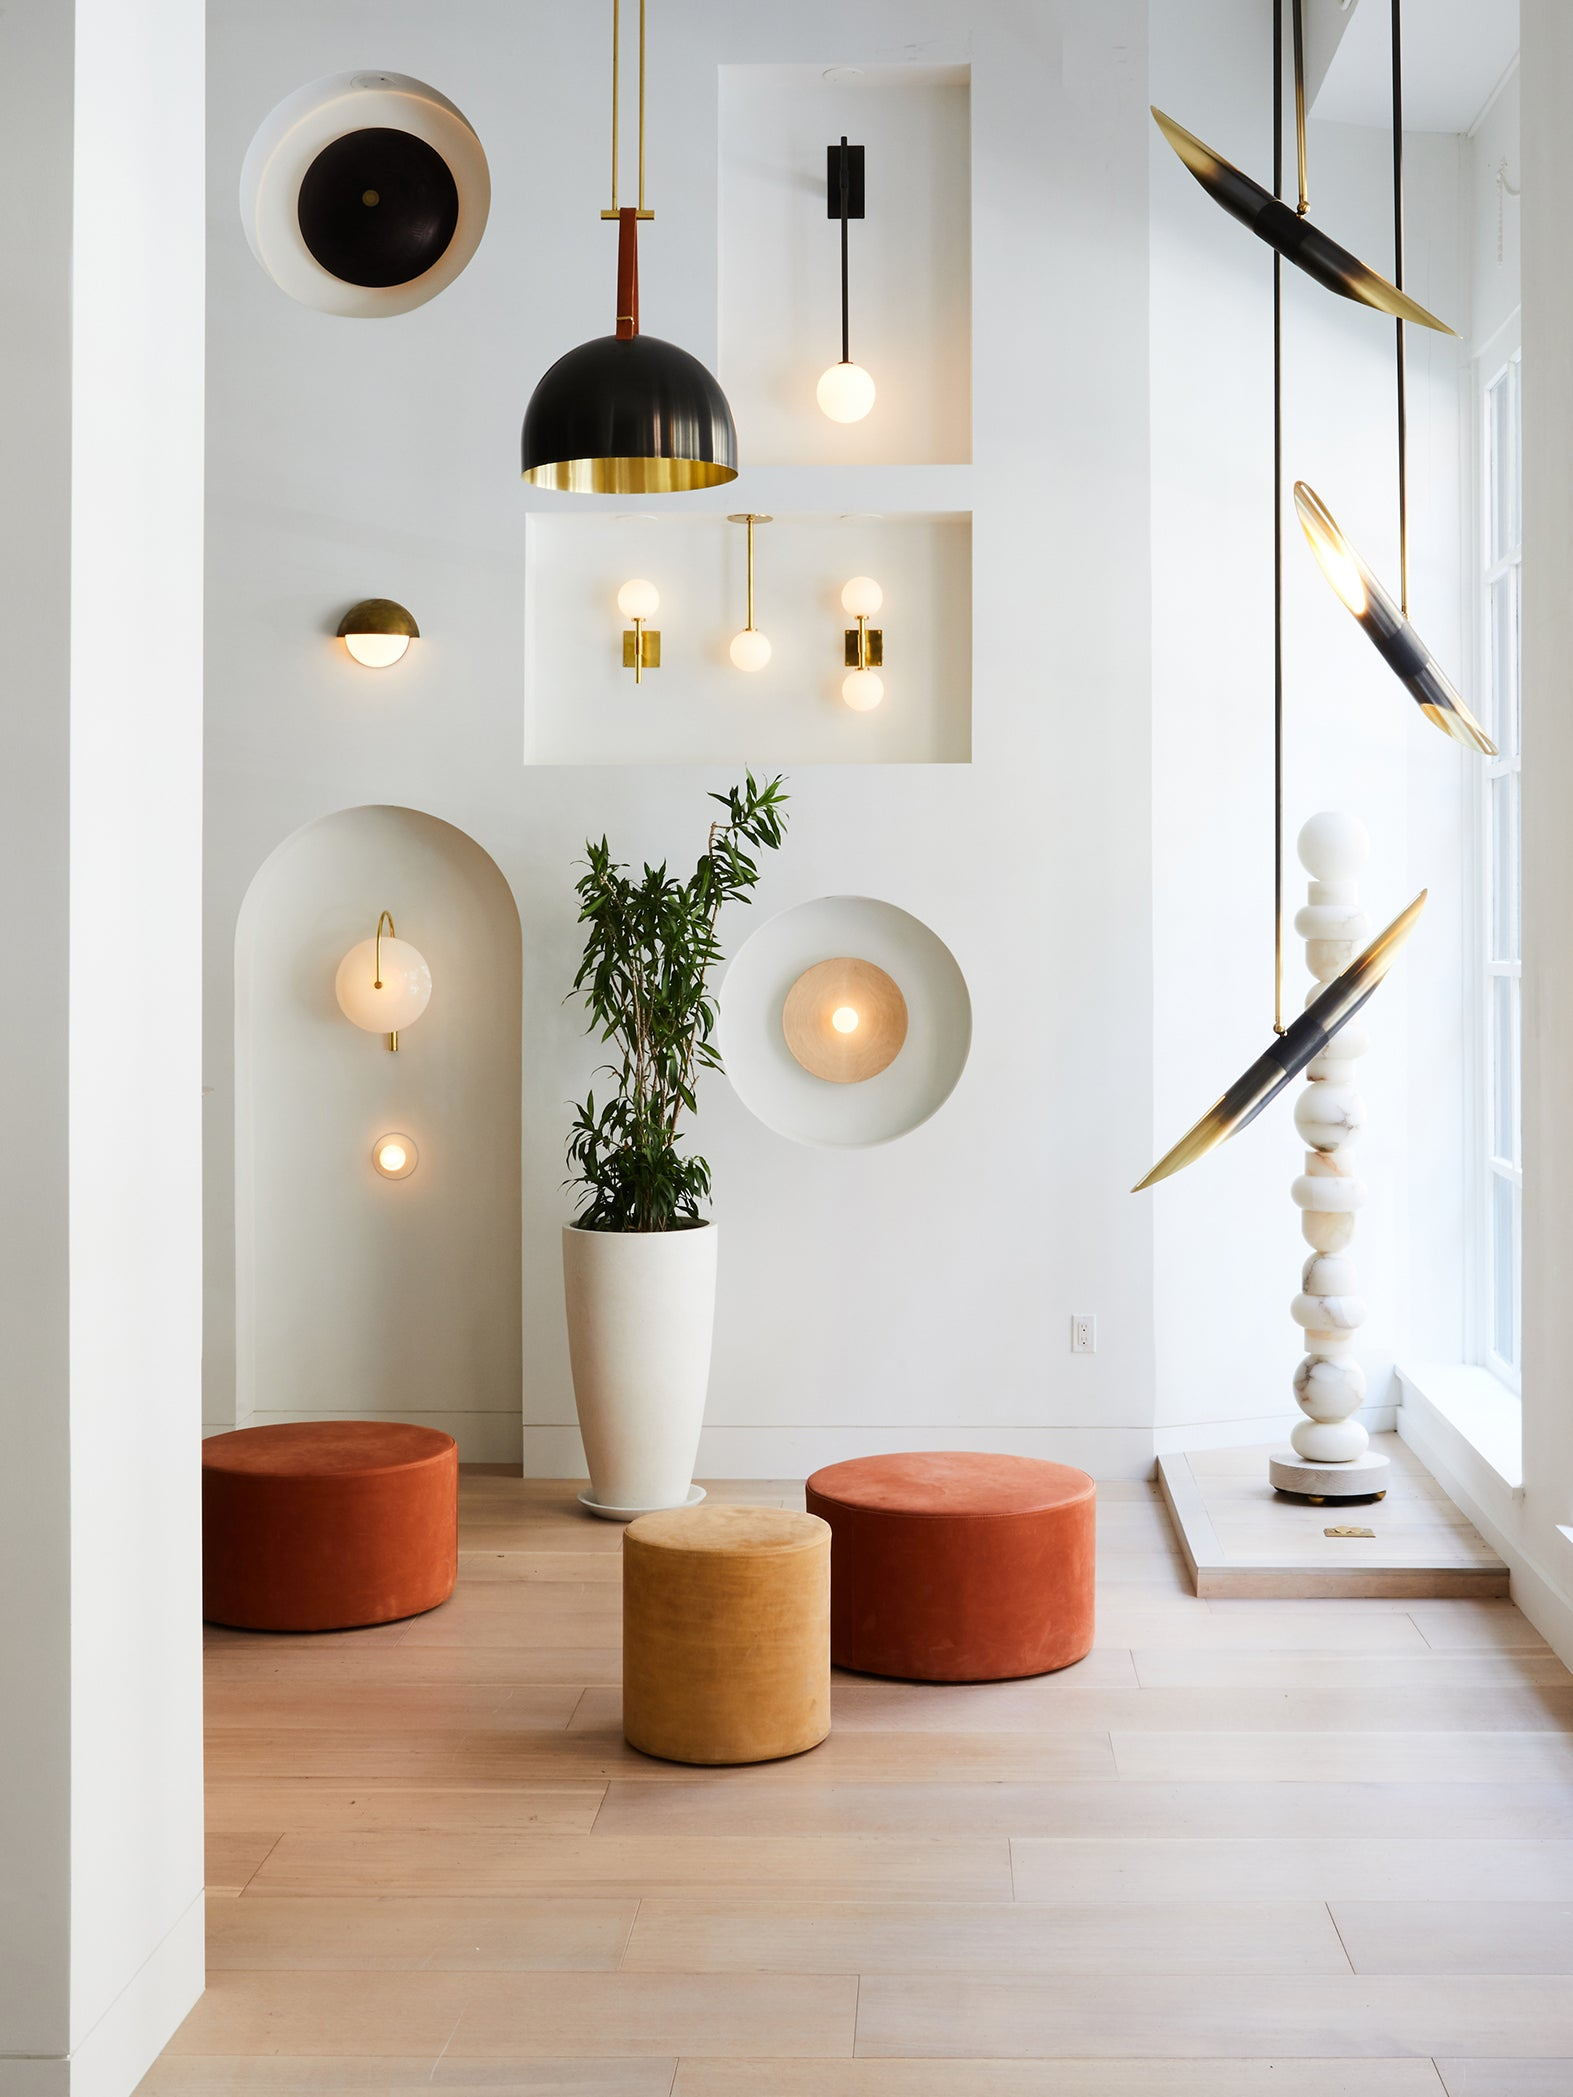 smooth wall niches filled with wall sconces